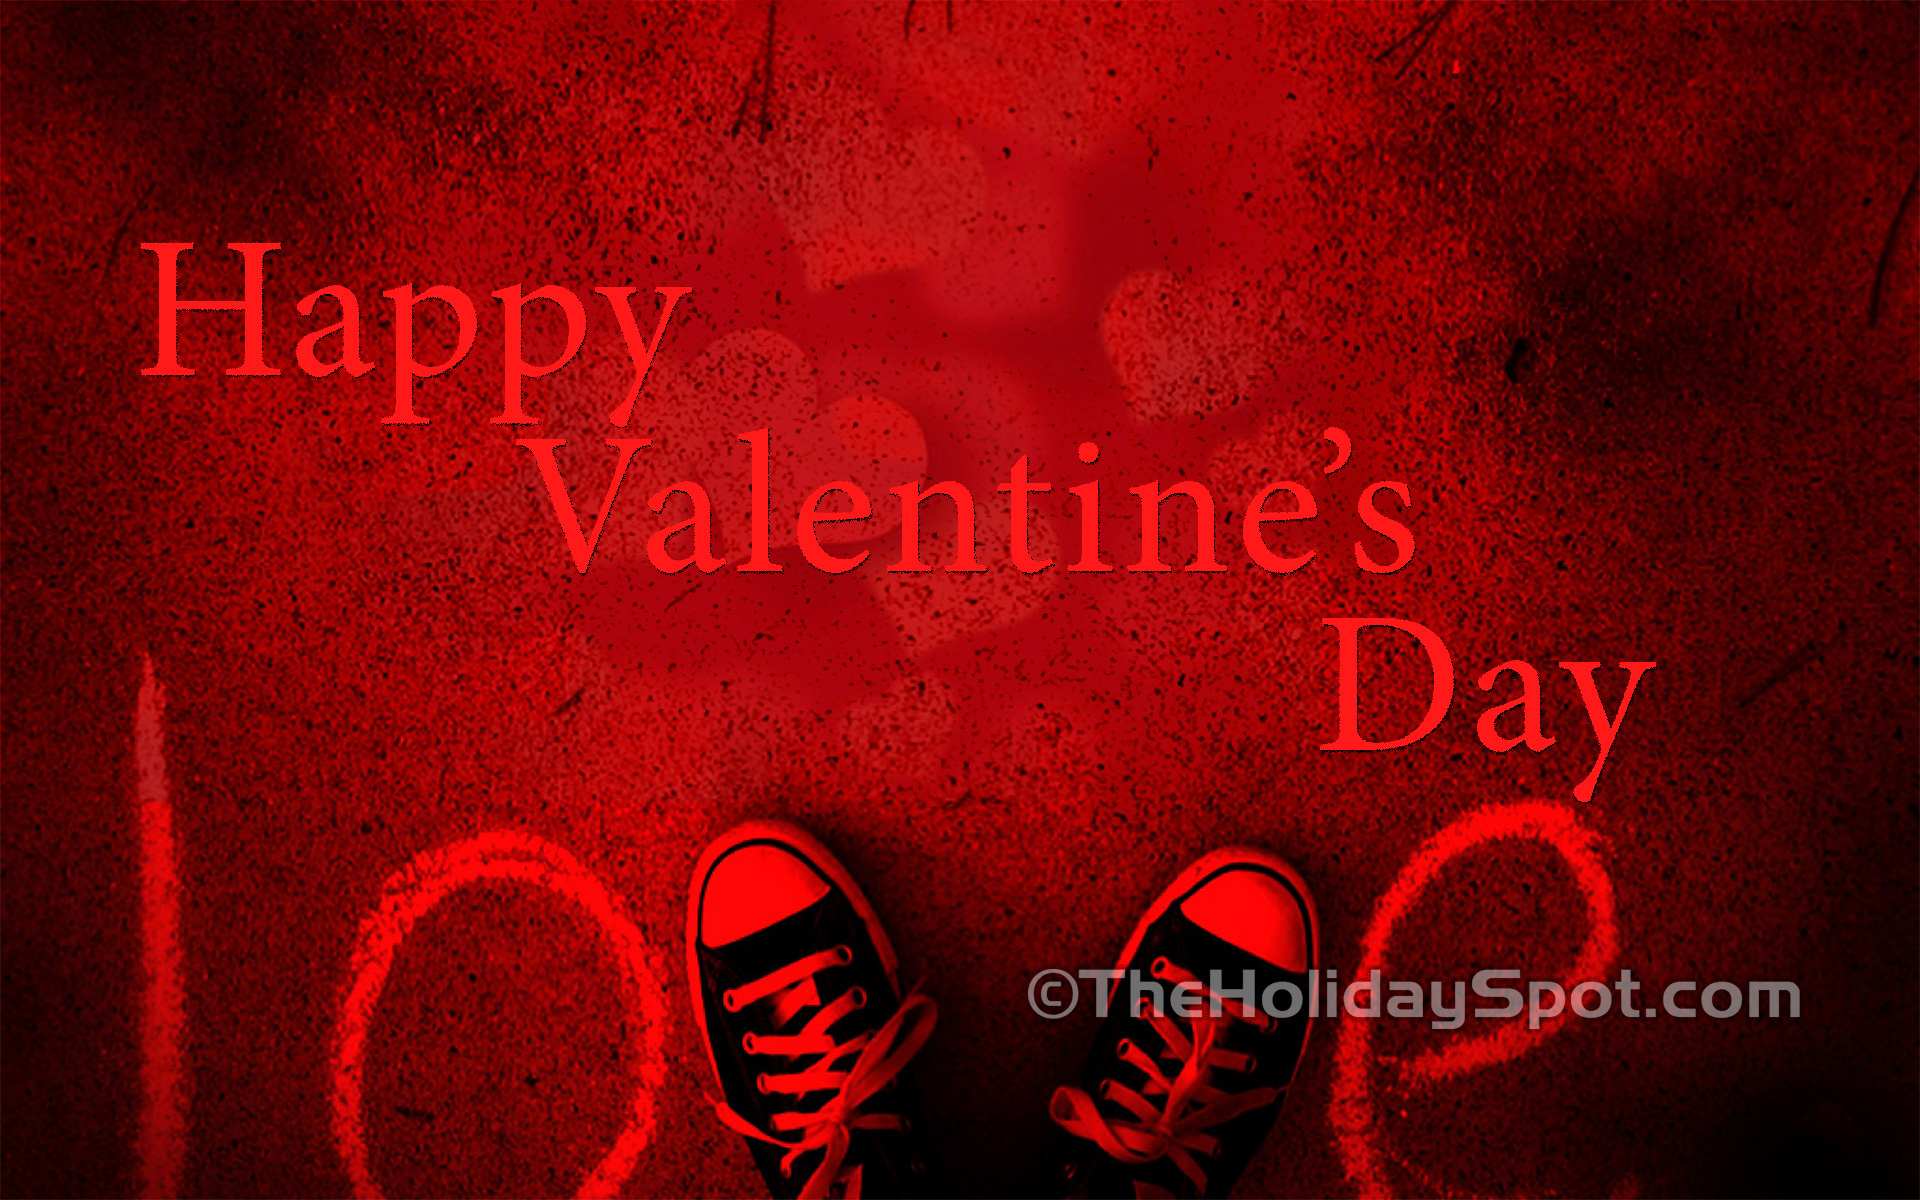 [Download Full HD Valentines Day Wallpapers for Mobile 1920x1200